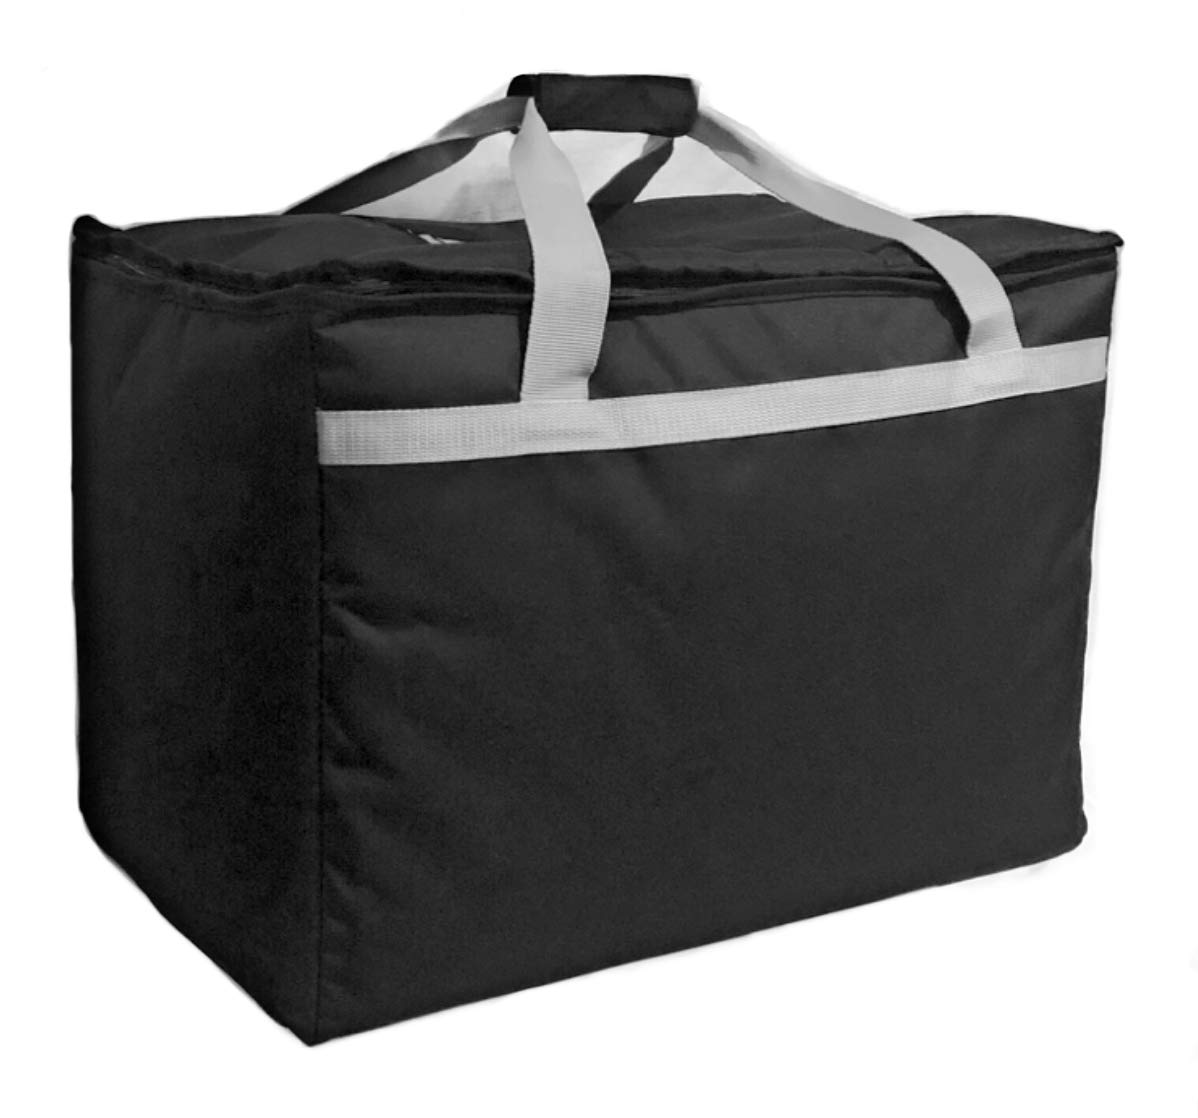 Candid- Insulated Food Delivery Bag (21''L x 14''W x 15''H), Hot/Cold Thermal Lightweight Grocery, Catering, Delivery or Party Bag.